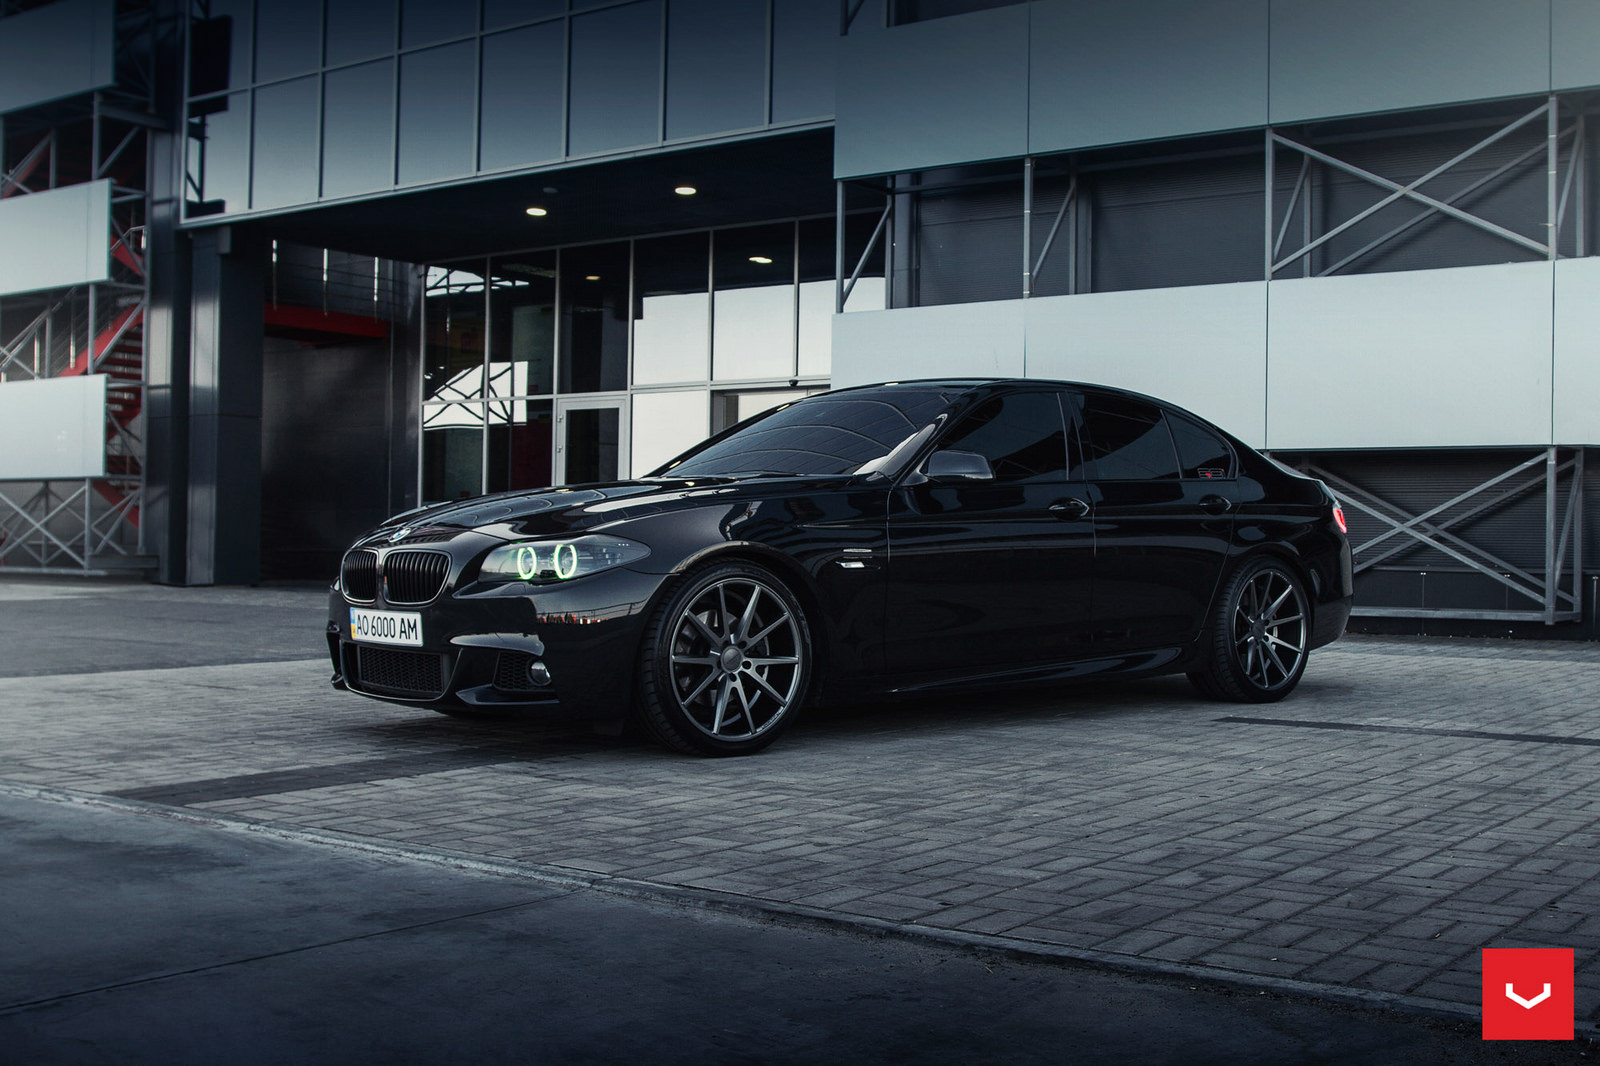 f10 bmw 5 series m sport sits on vossen wheels bmw car. Black Bedroom Furniture Sets. Home Design Ideas